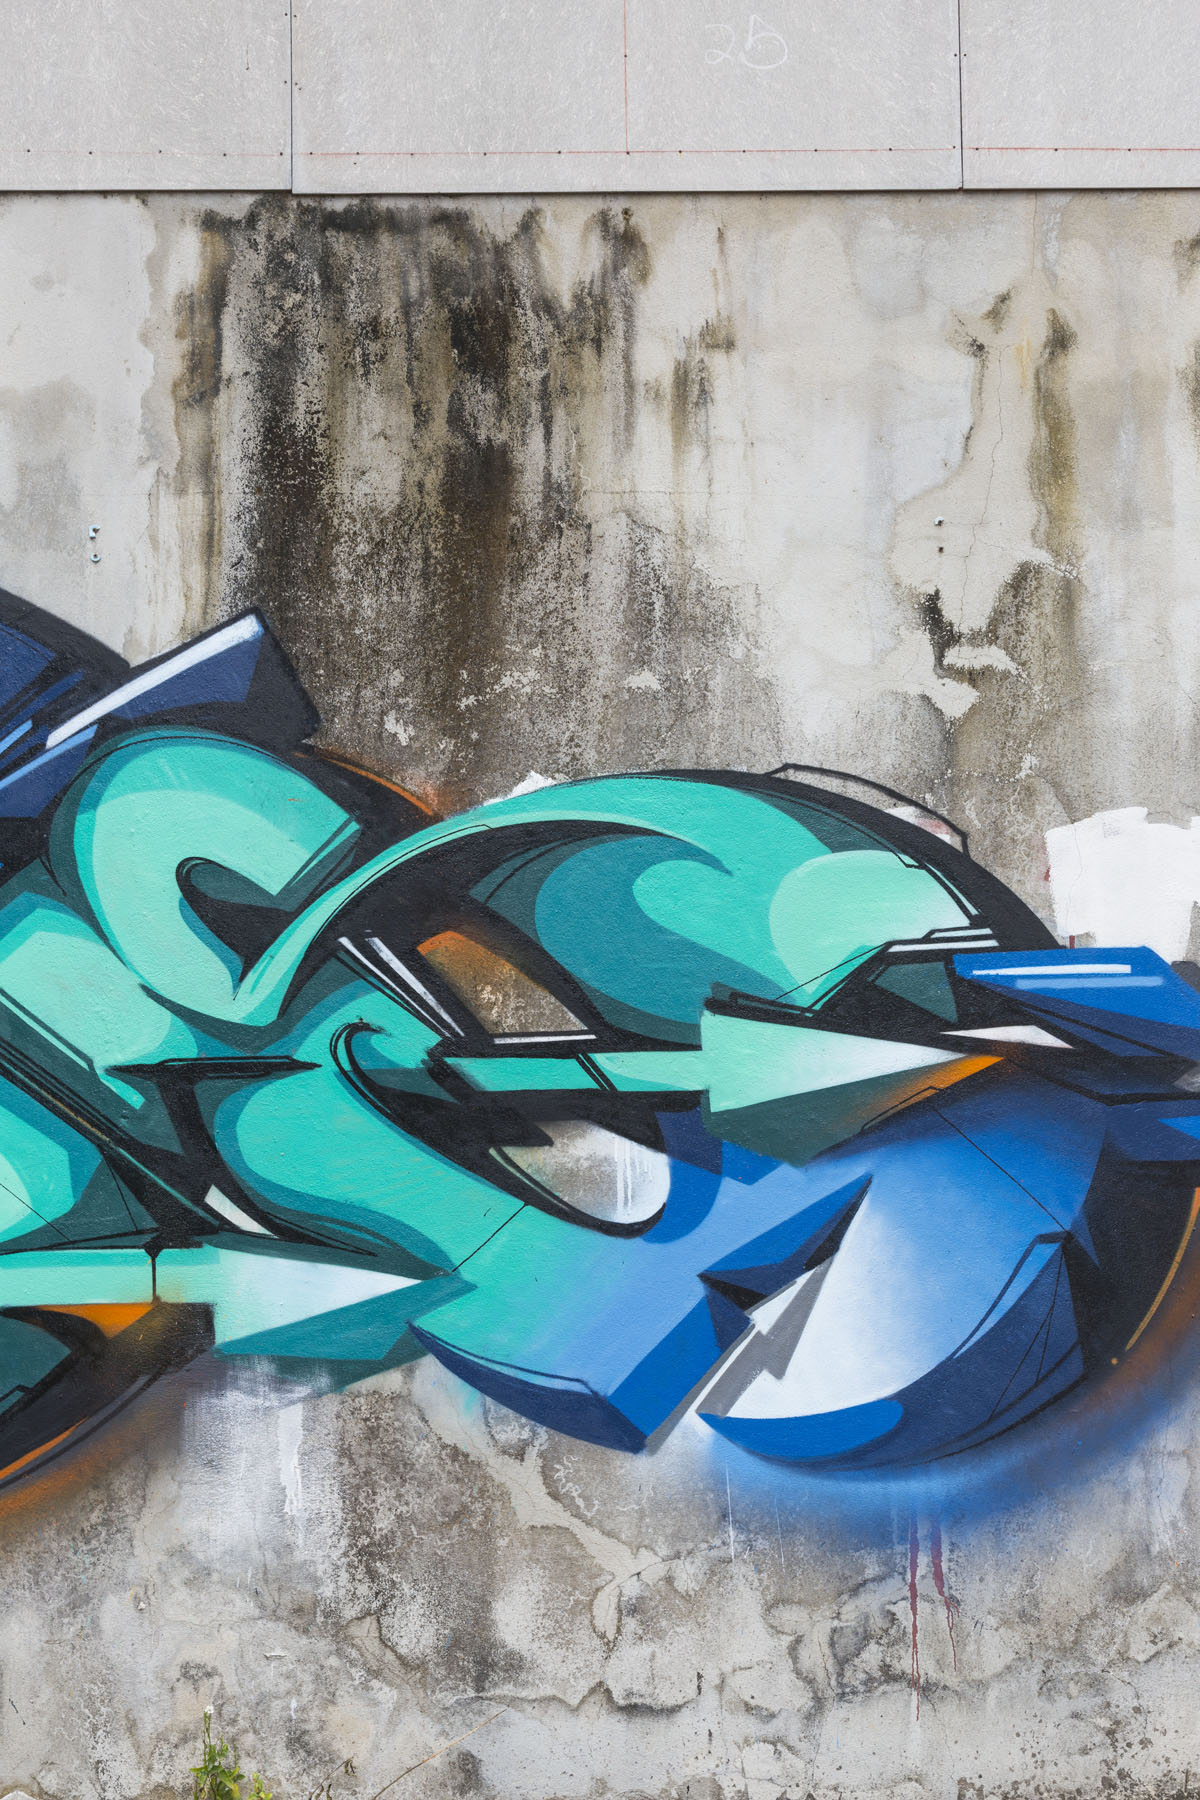 A work by Does - 201702-DOES-Ironlak-Thailand_LukeShirlaw_img_1596